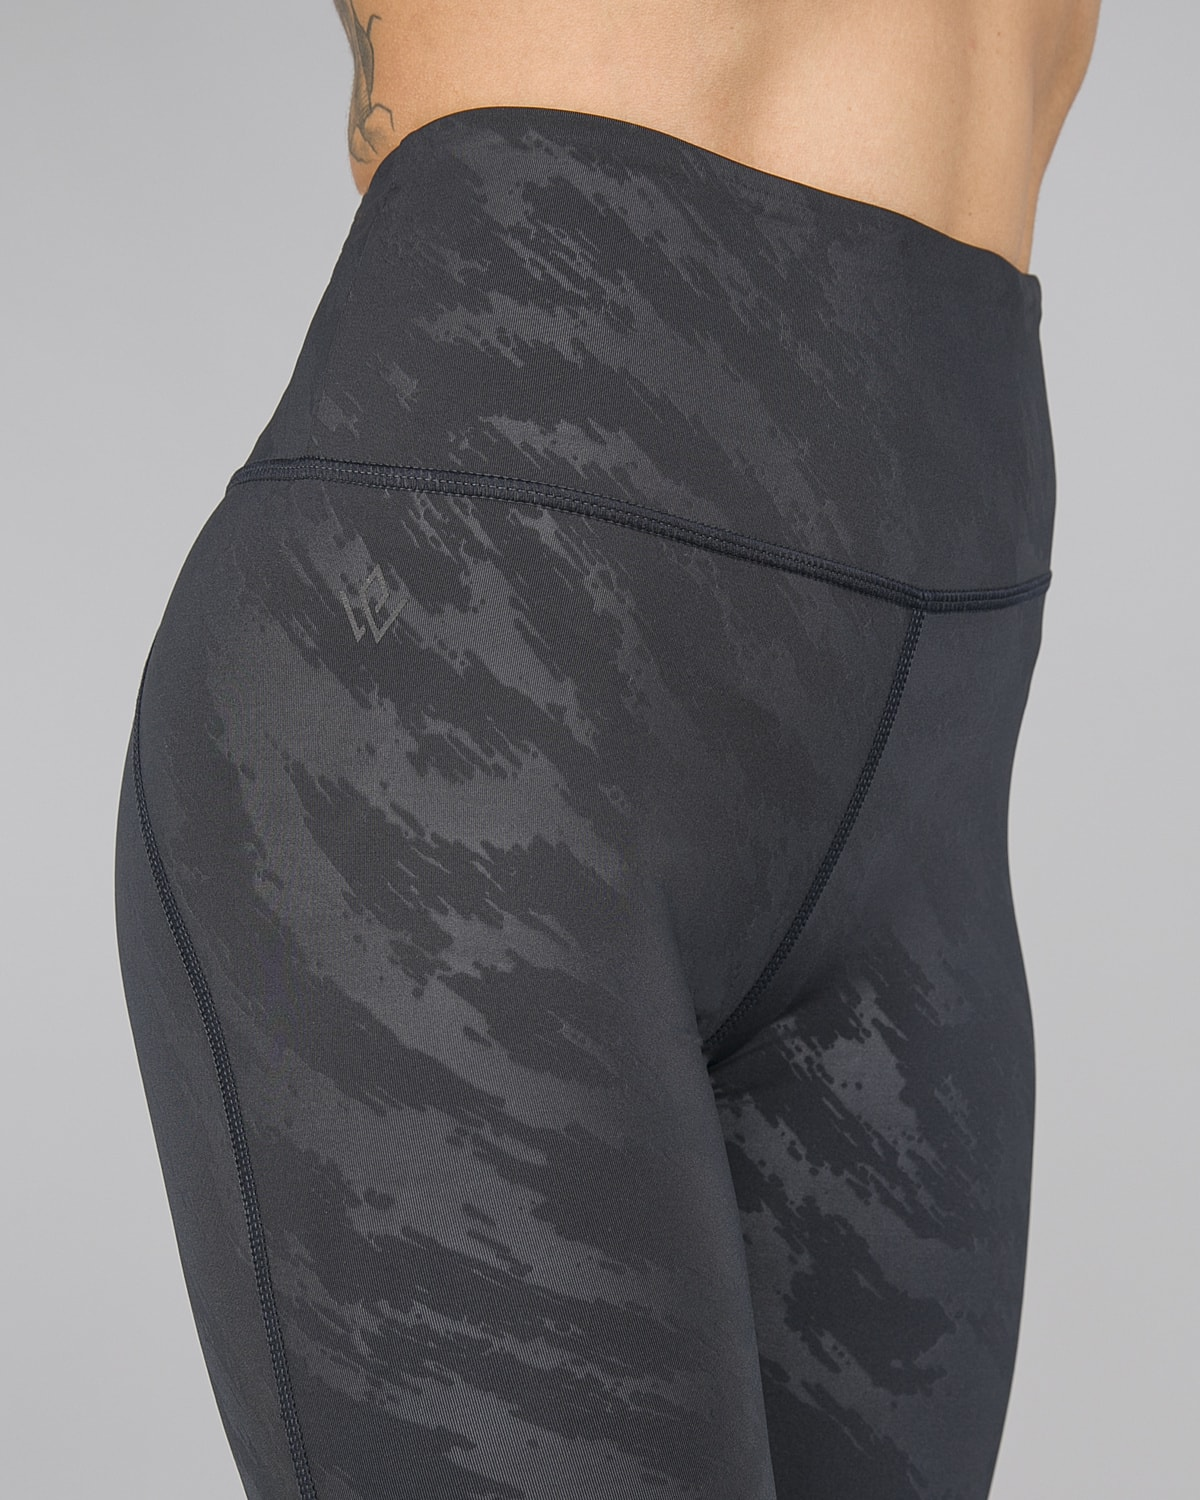 Workout Empire – Elevate 3:4 Leggings – Svart10